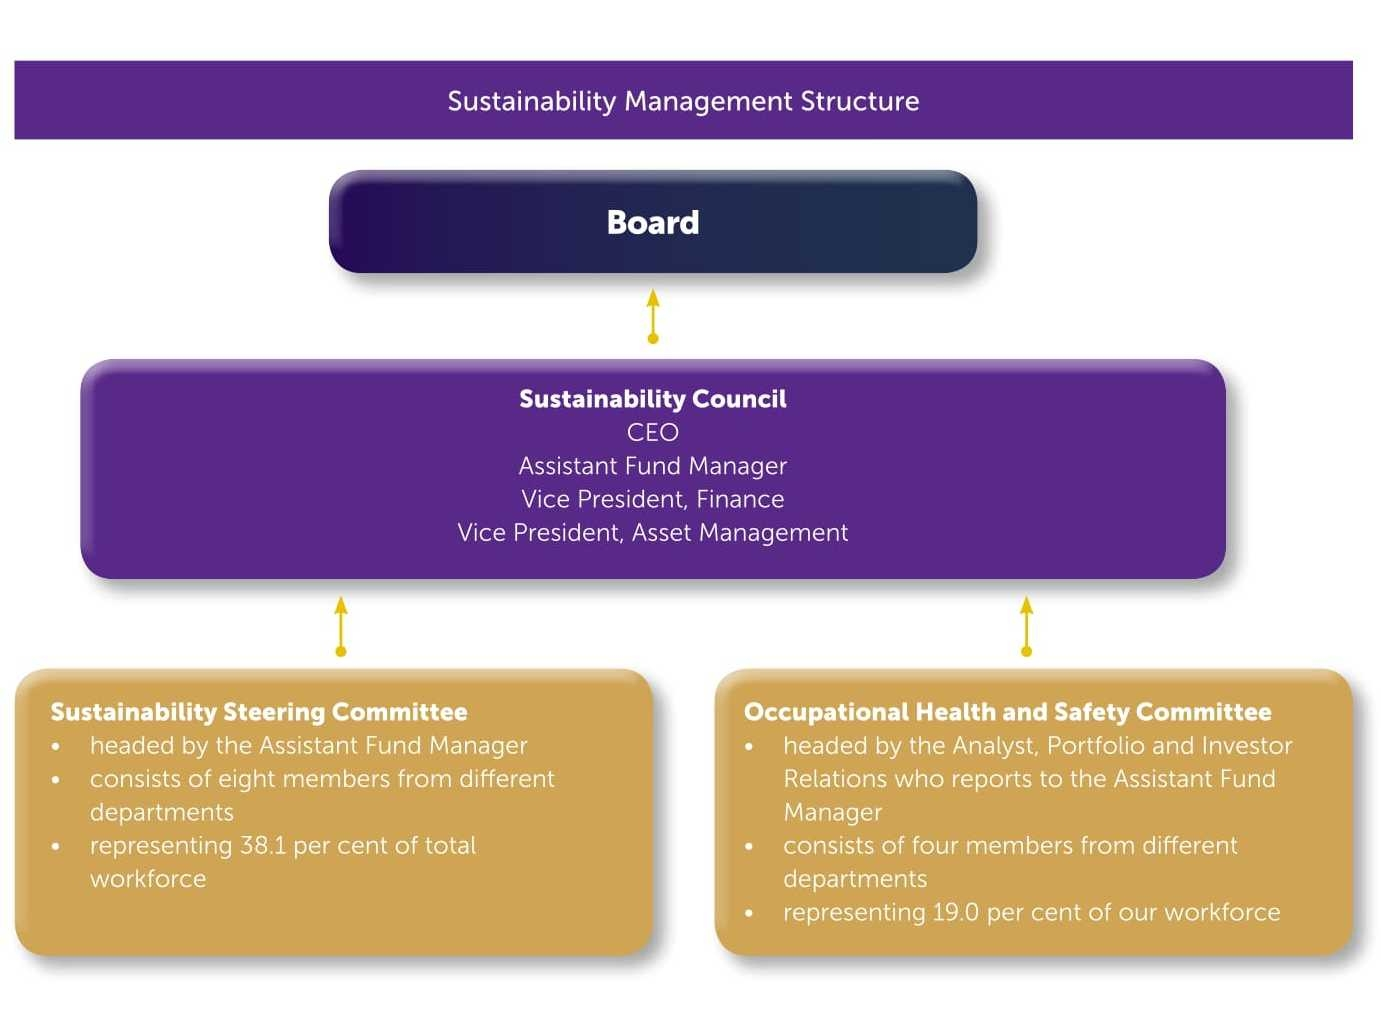 Sustainability Management Structure